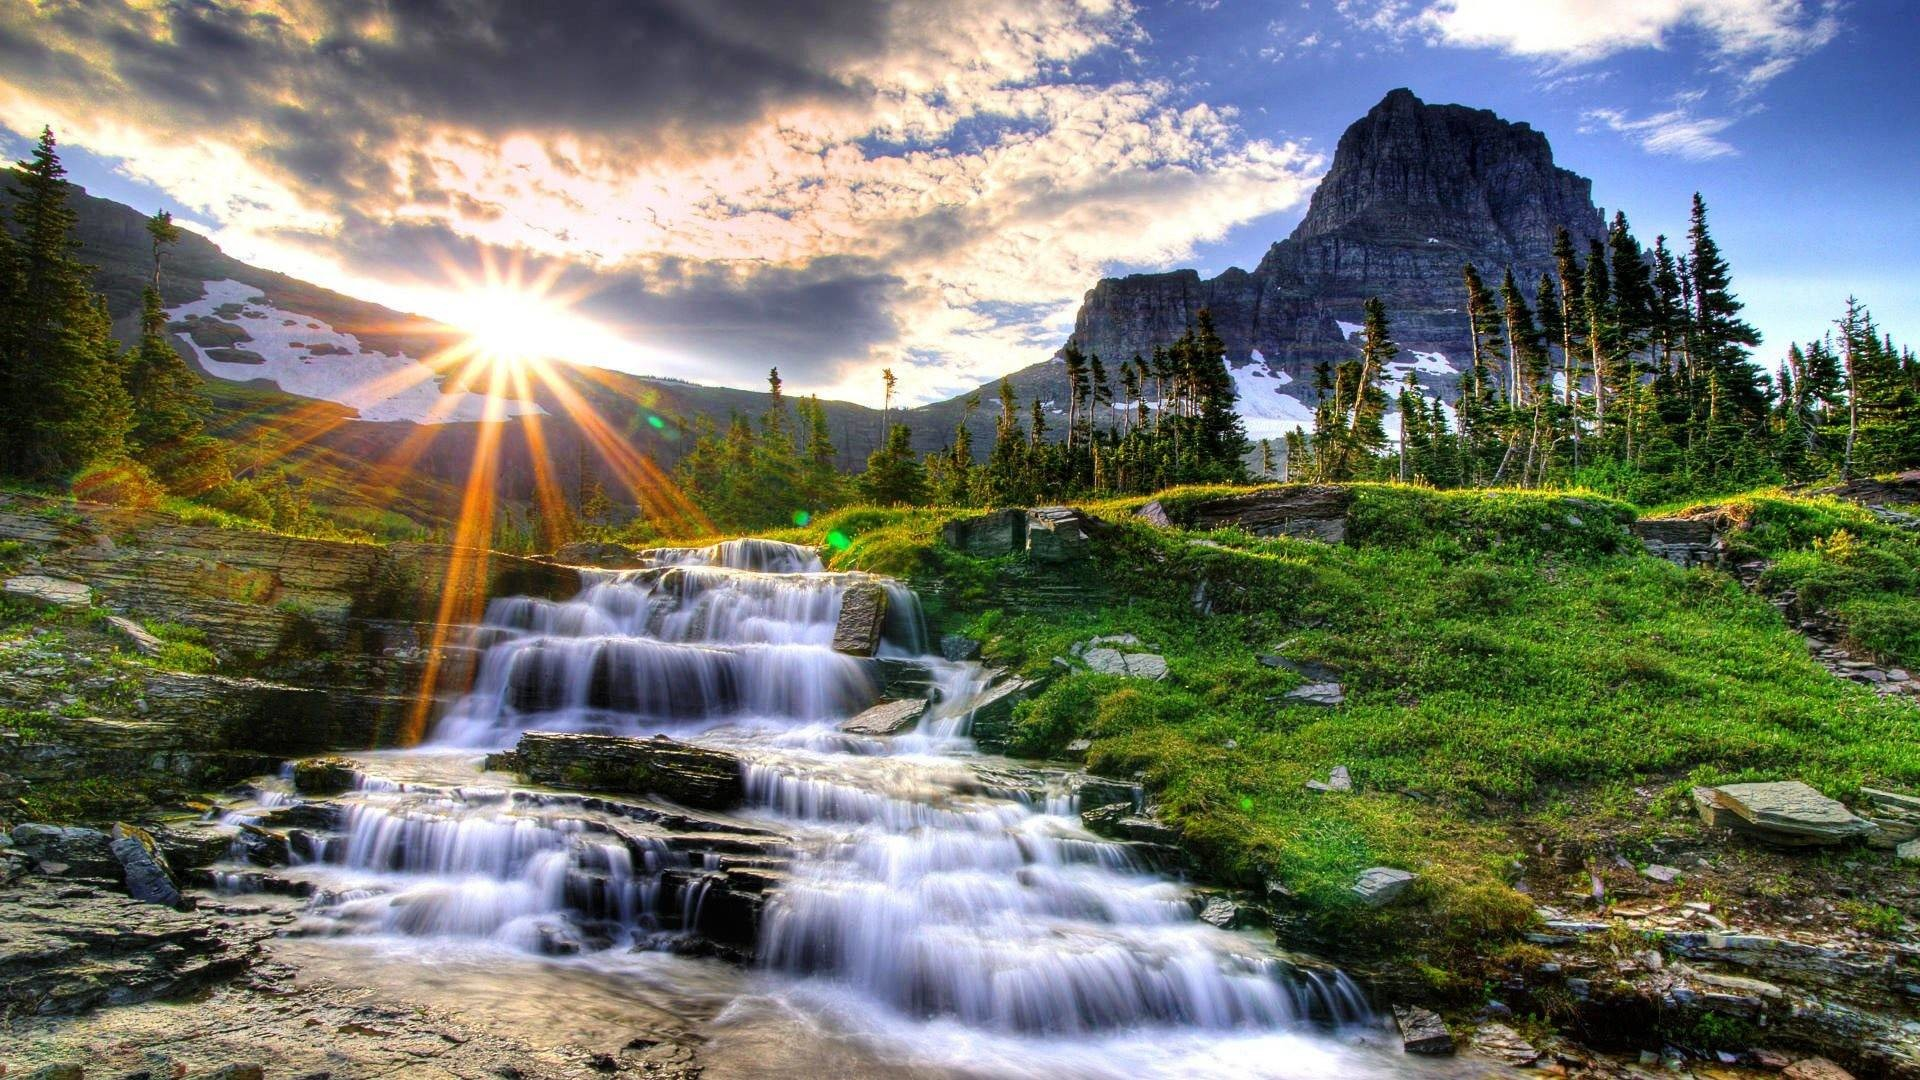 HD Nature Wallpapers for Desktop 65 images 1920x1080